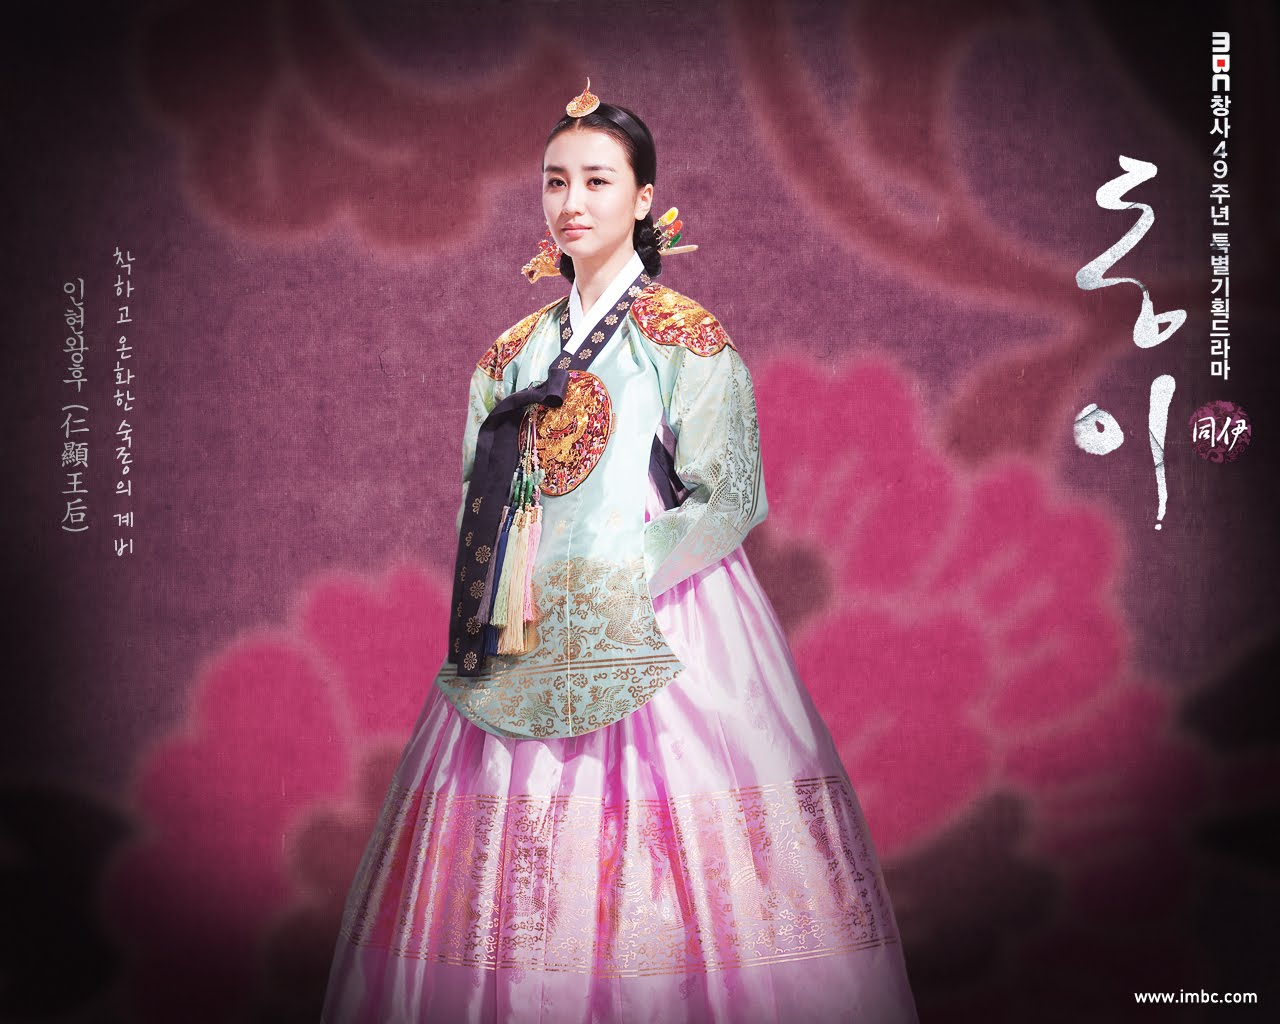 New 3d Wallpaper Download Dong Yi Jewel In The Crown Wallpapers New Best